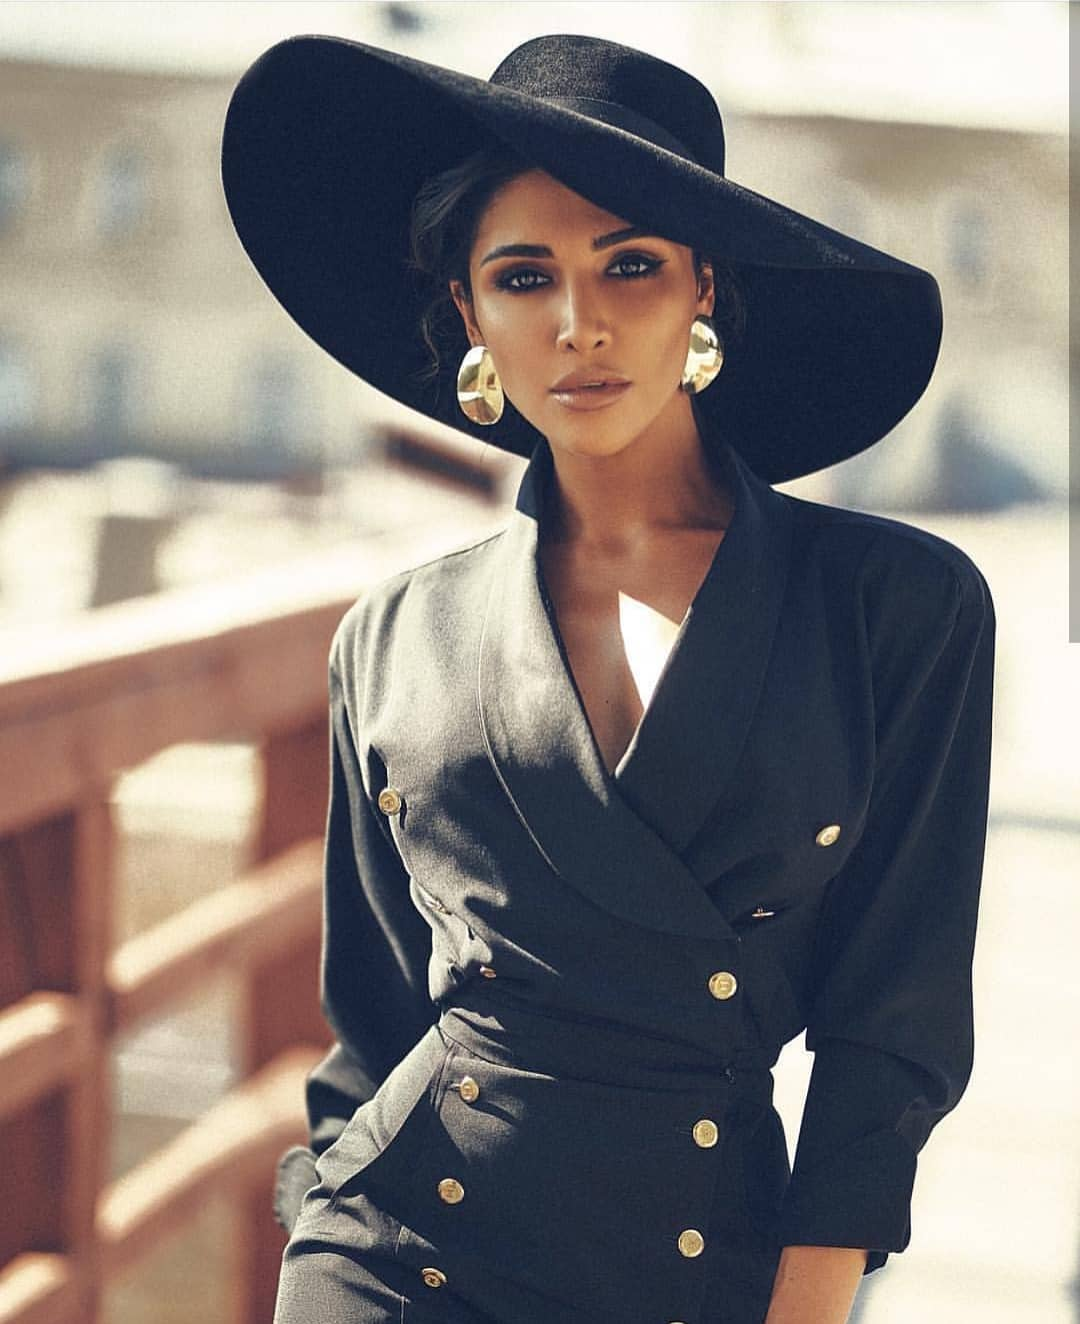 All In Black: Double Breasted Black Coat Dress And Wide-Brim Hat 2020